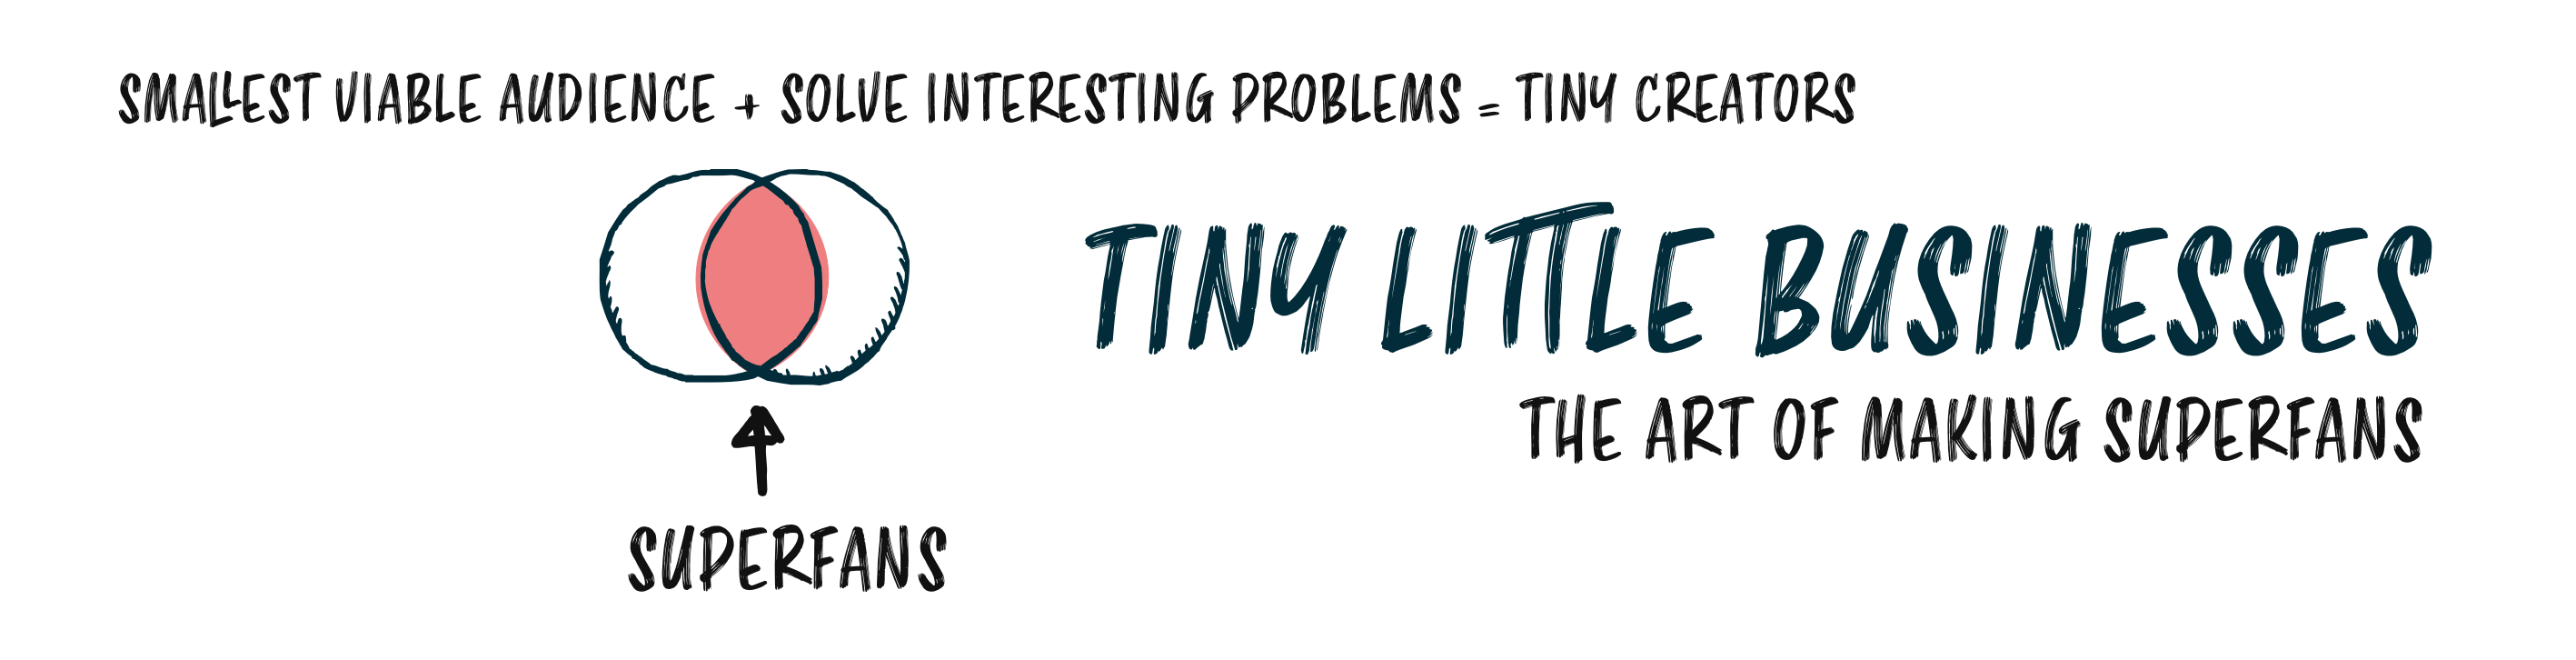 Tiny Little Businesses | by André & Anita Chaperon header image